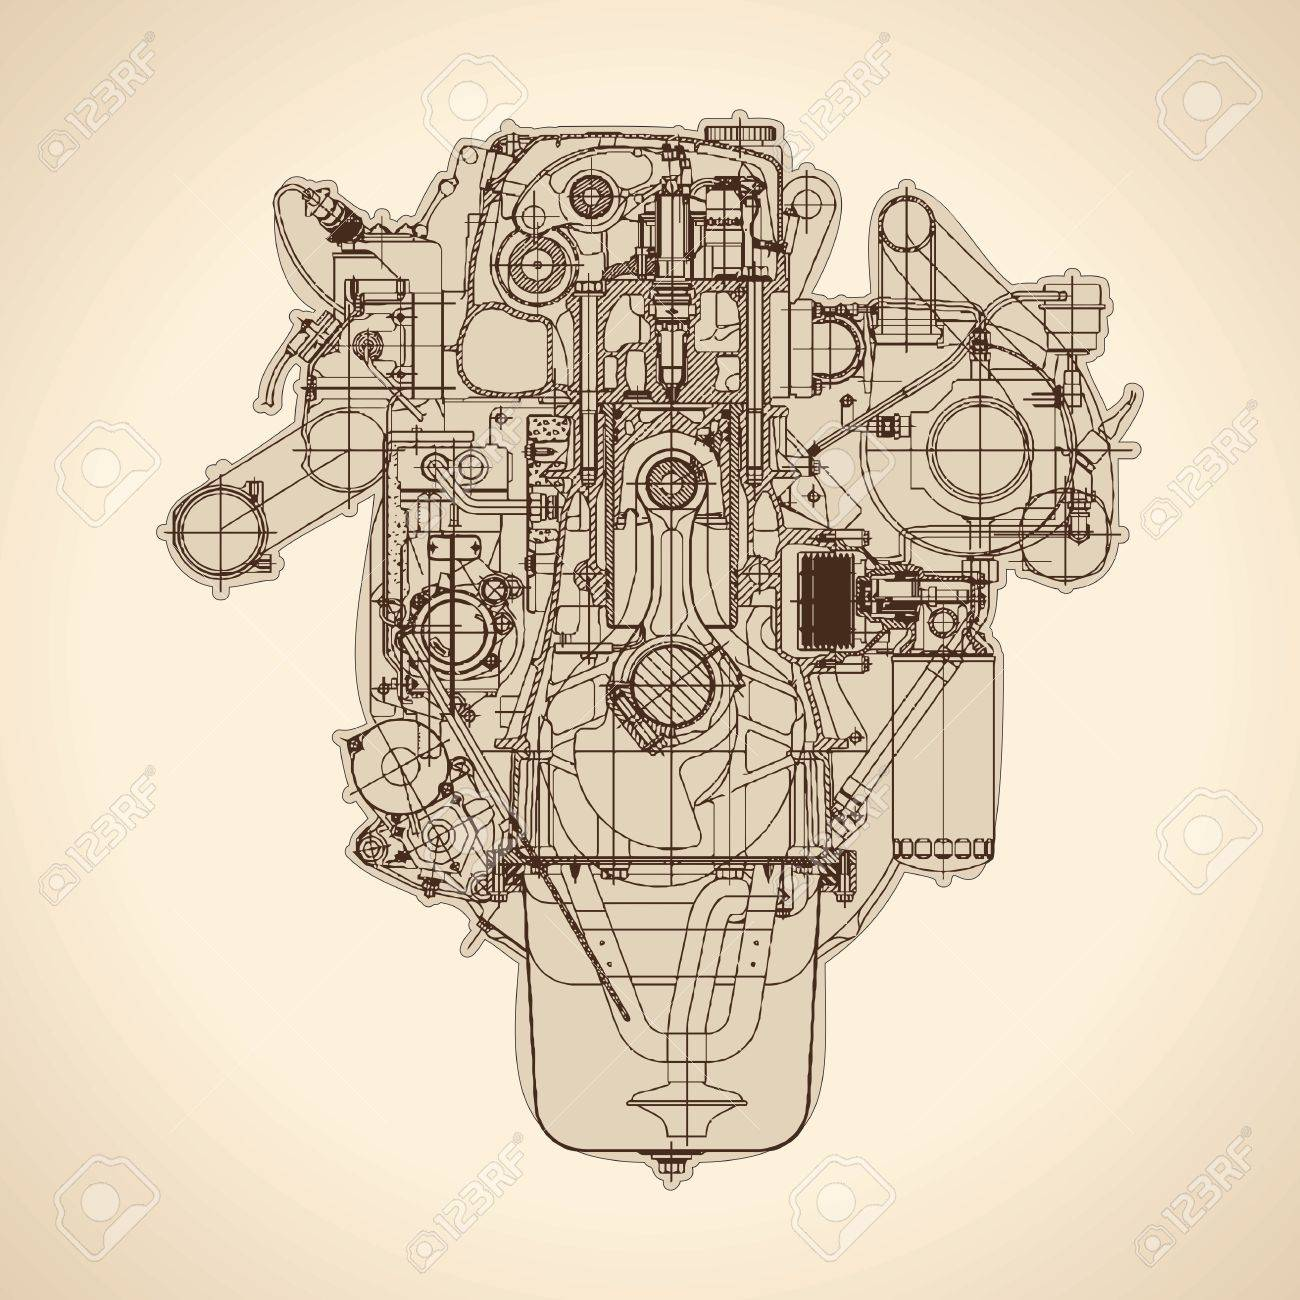 1300x1300 Old Internal Combustion Engine, Drawing. Royalty Free Cliparts